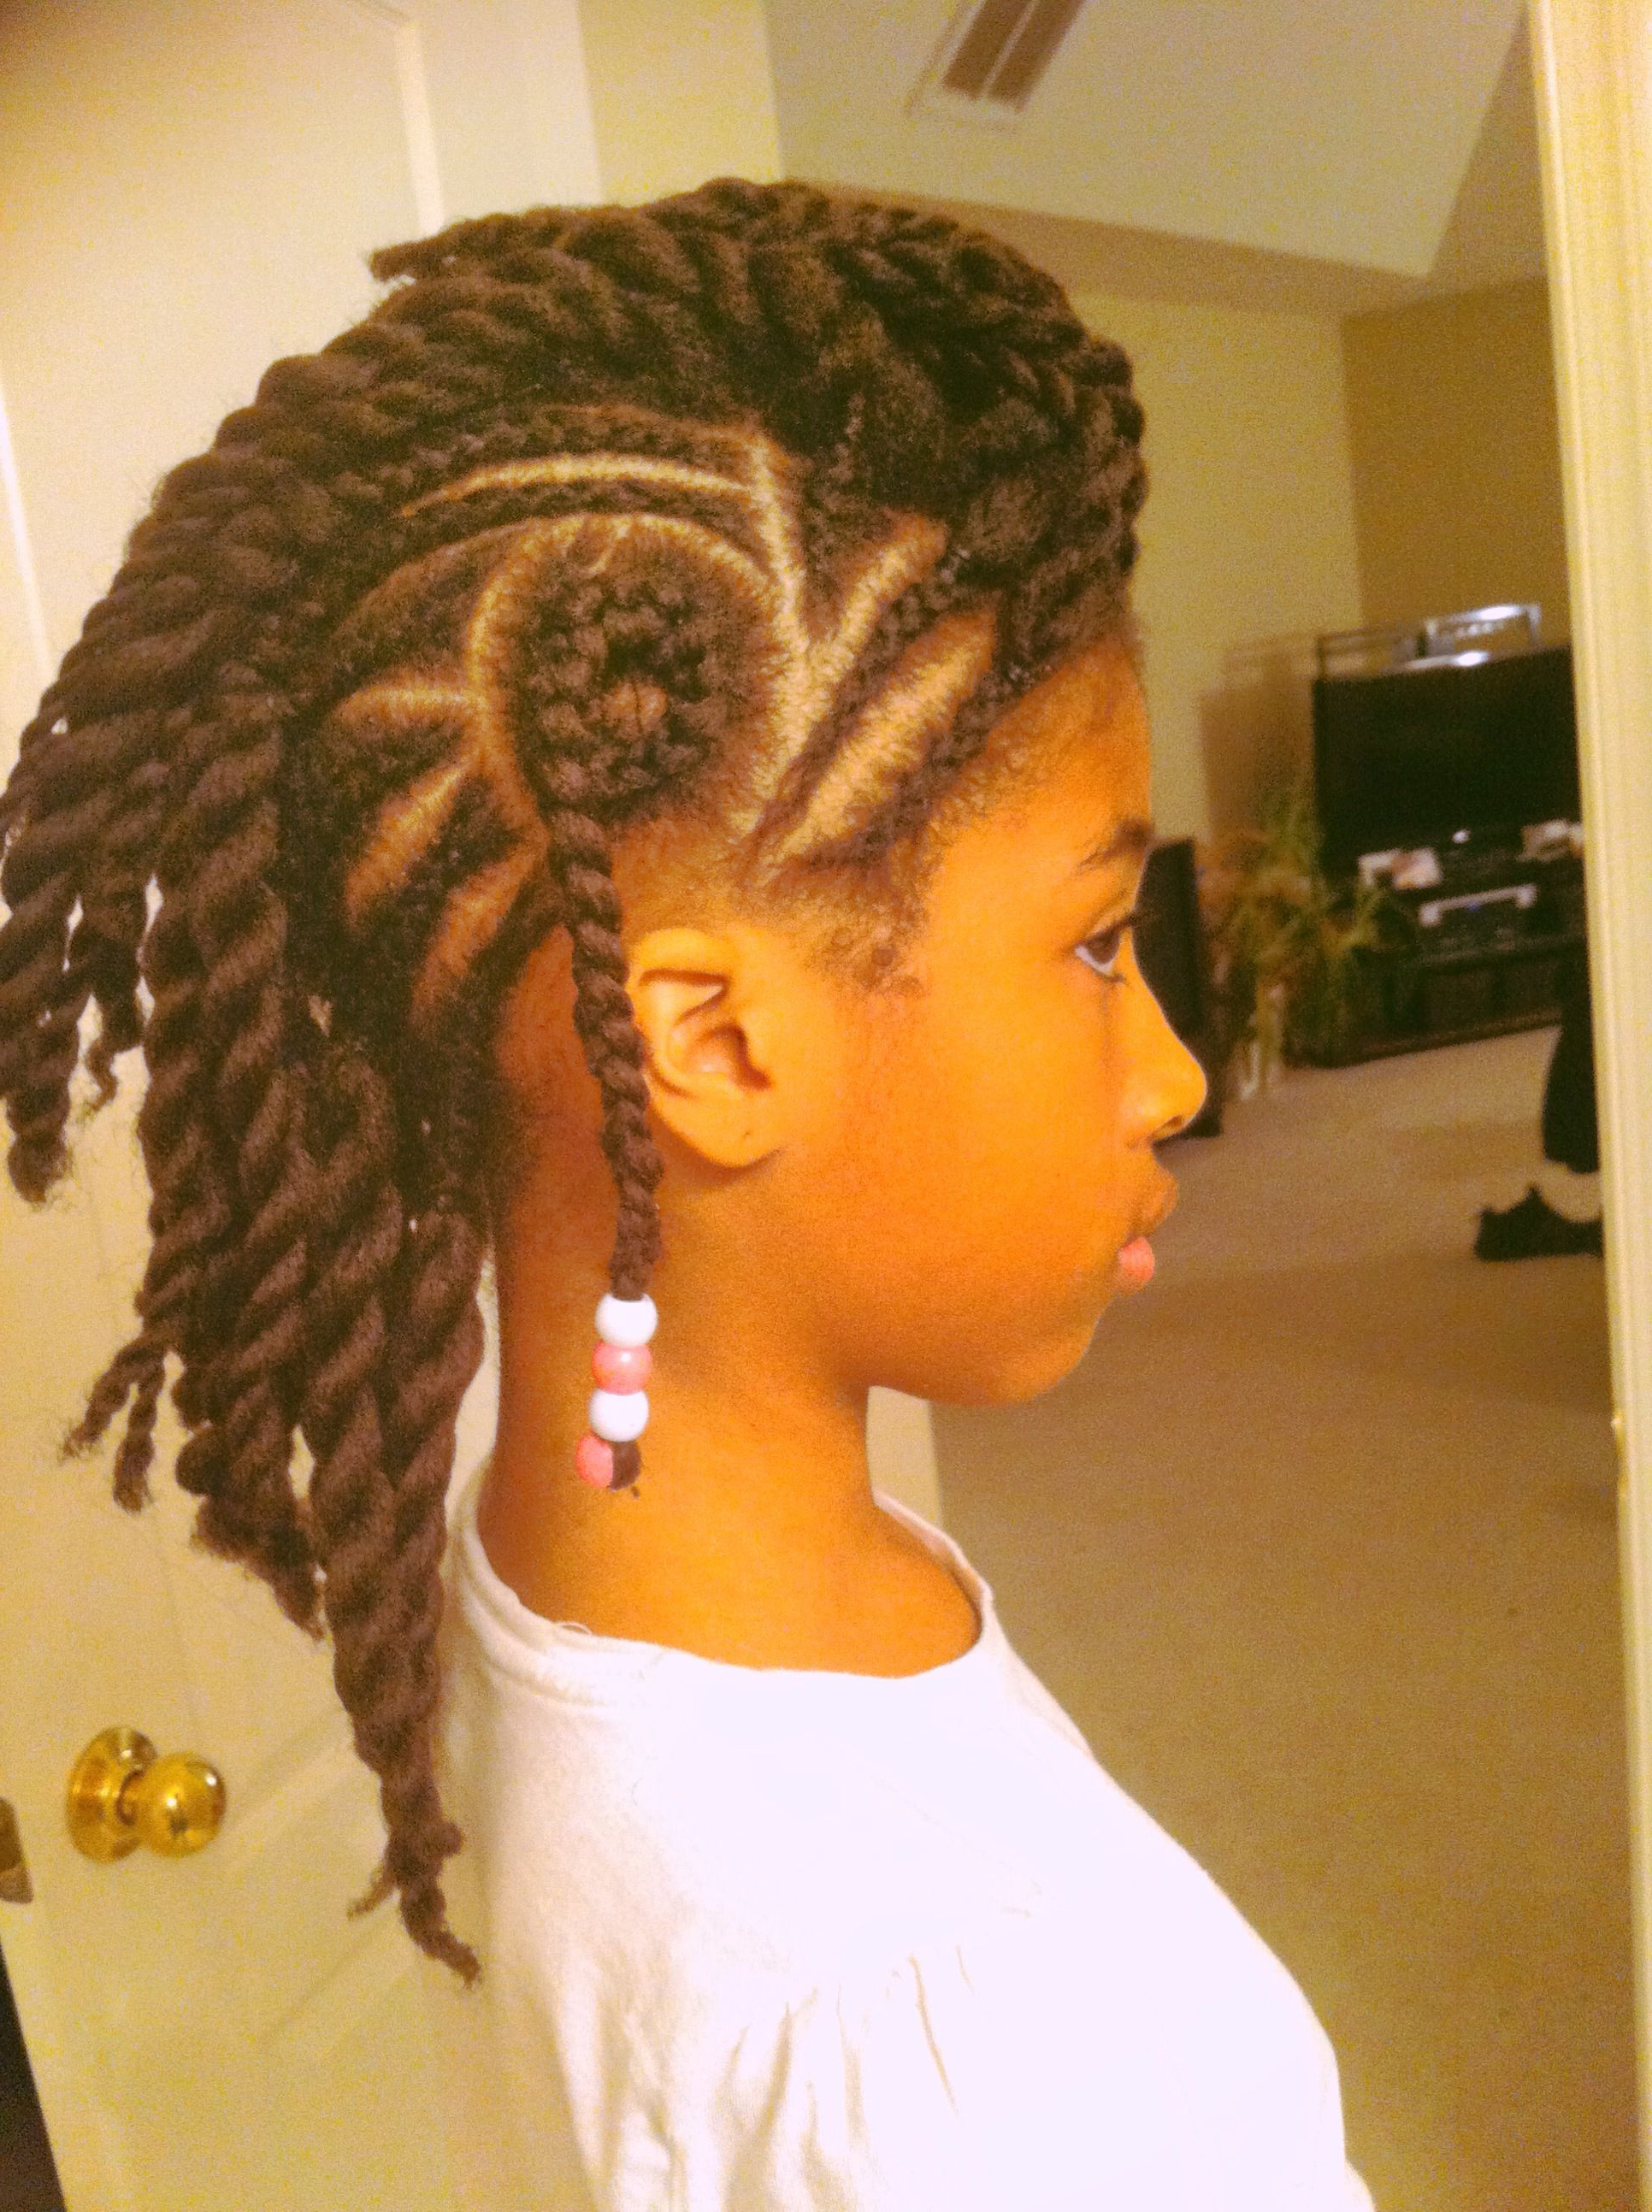 Hairstyles : Natural Curly Mohawk Hairstyles Cool Natural Throughout Latest Natural Curly Hair Mohawk Hairstyles (View 11 of 20)